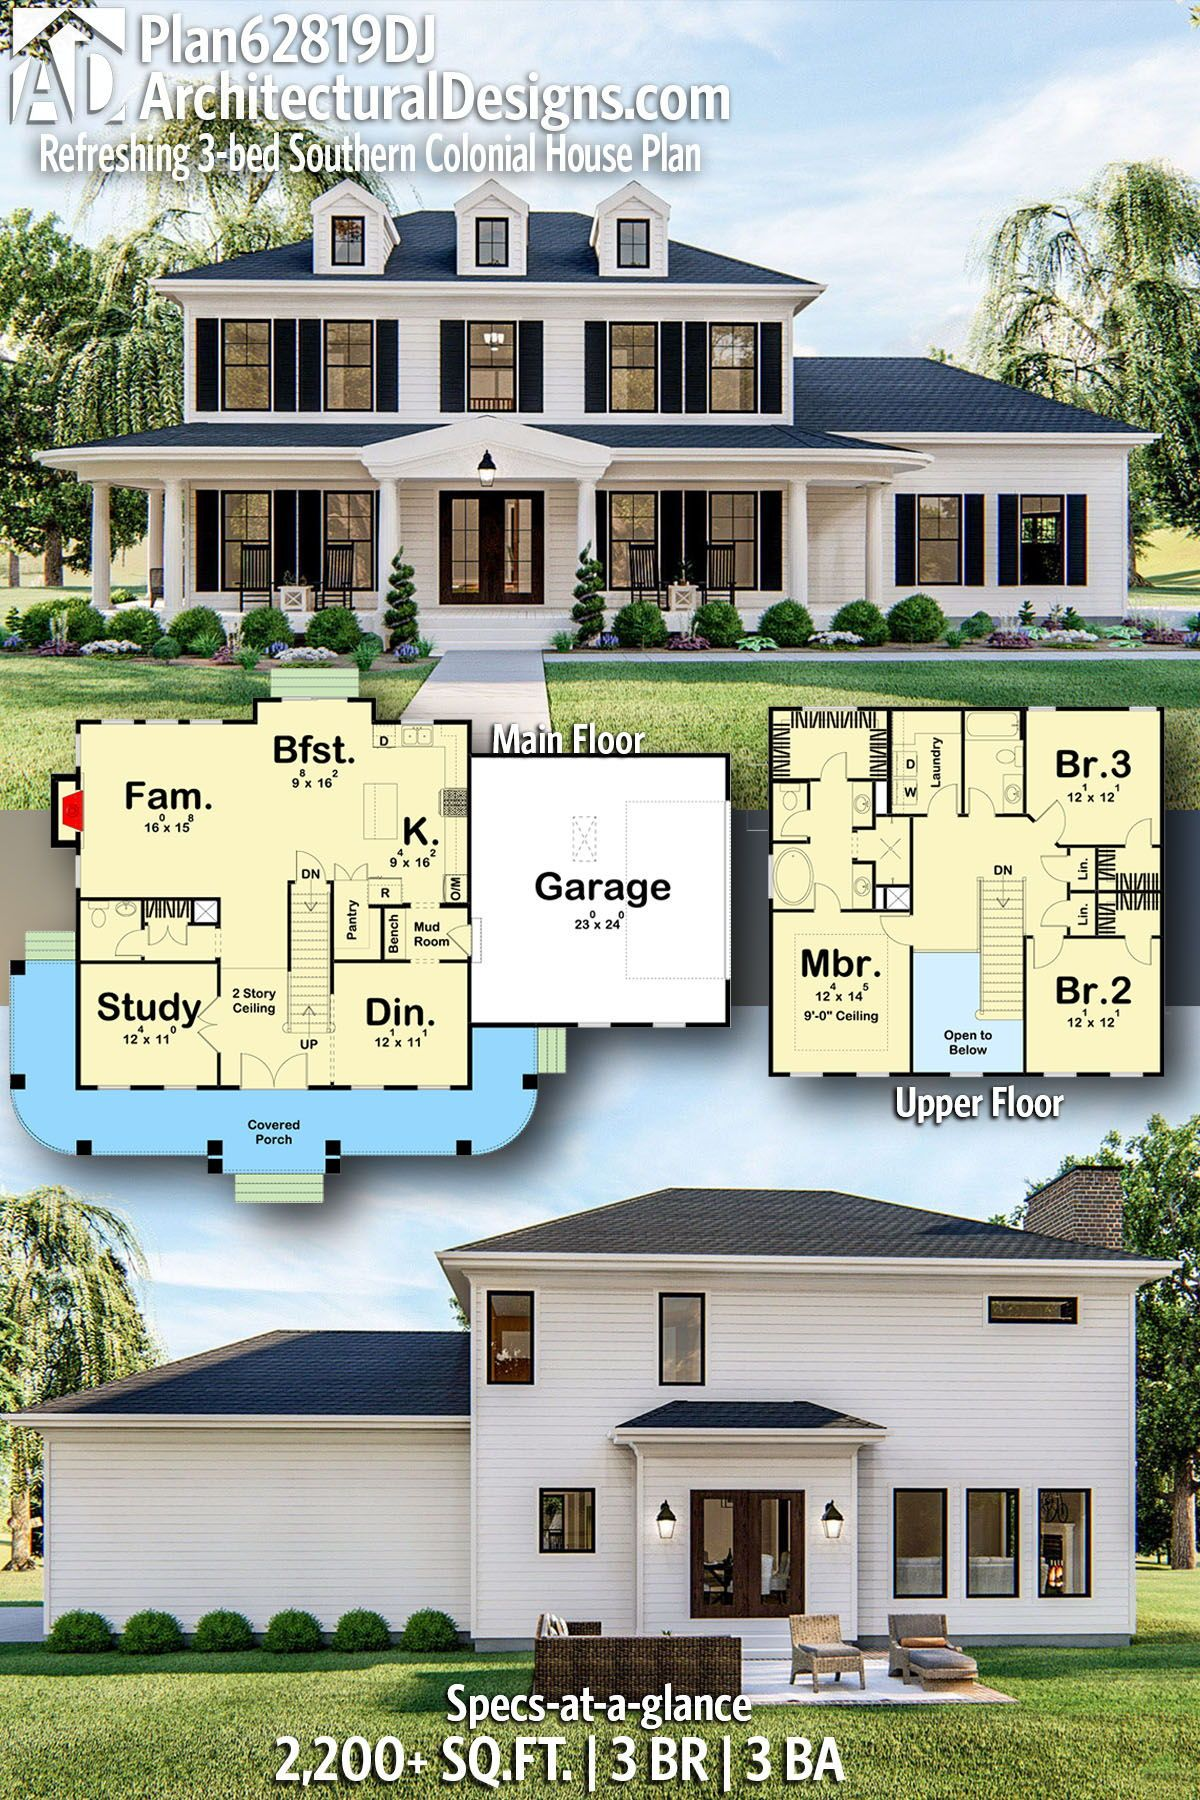 Plan 62819dj Refreshing 3 Bed Southern Colonial House Plan Colonial House Plans Southern Colonial House Plans Colonial House